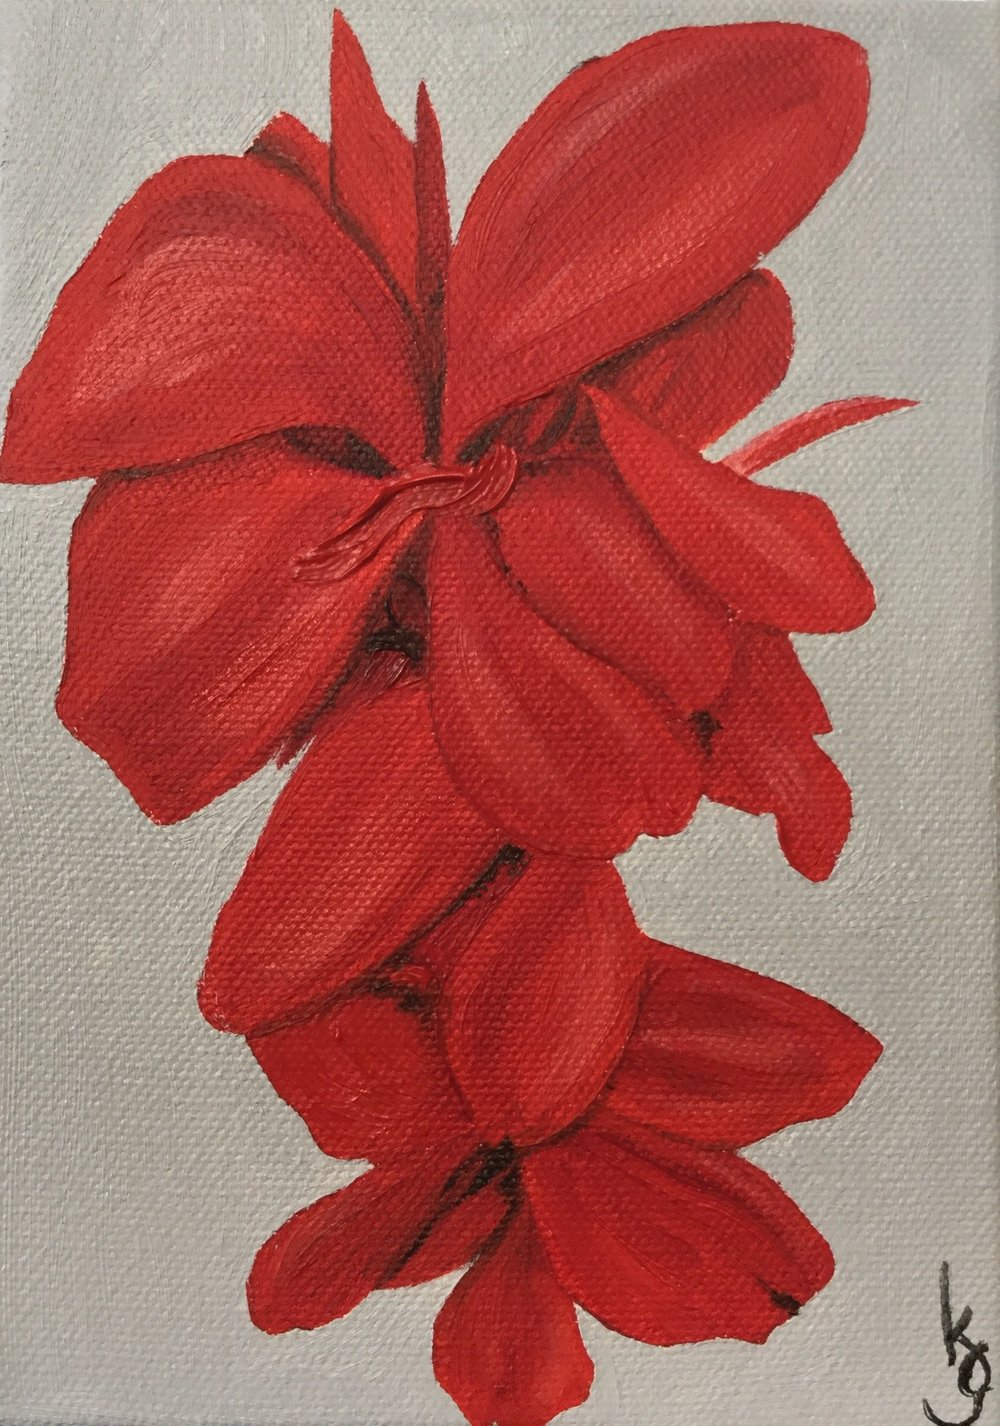 Red Canas , 2017 754241761217 Oil on canvas 7 x 5 x 1.5 inches